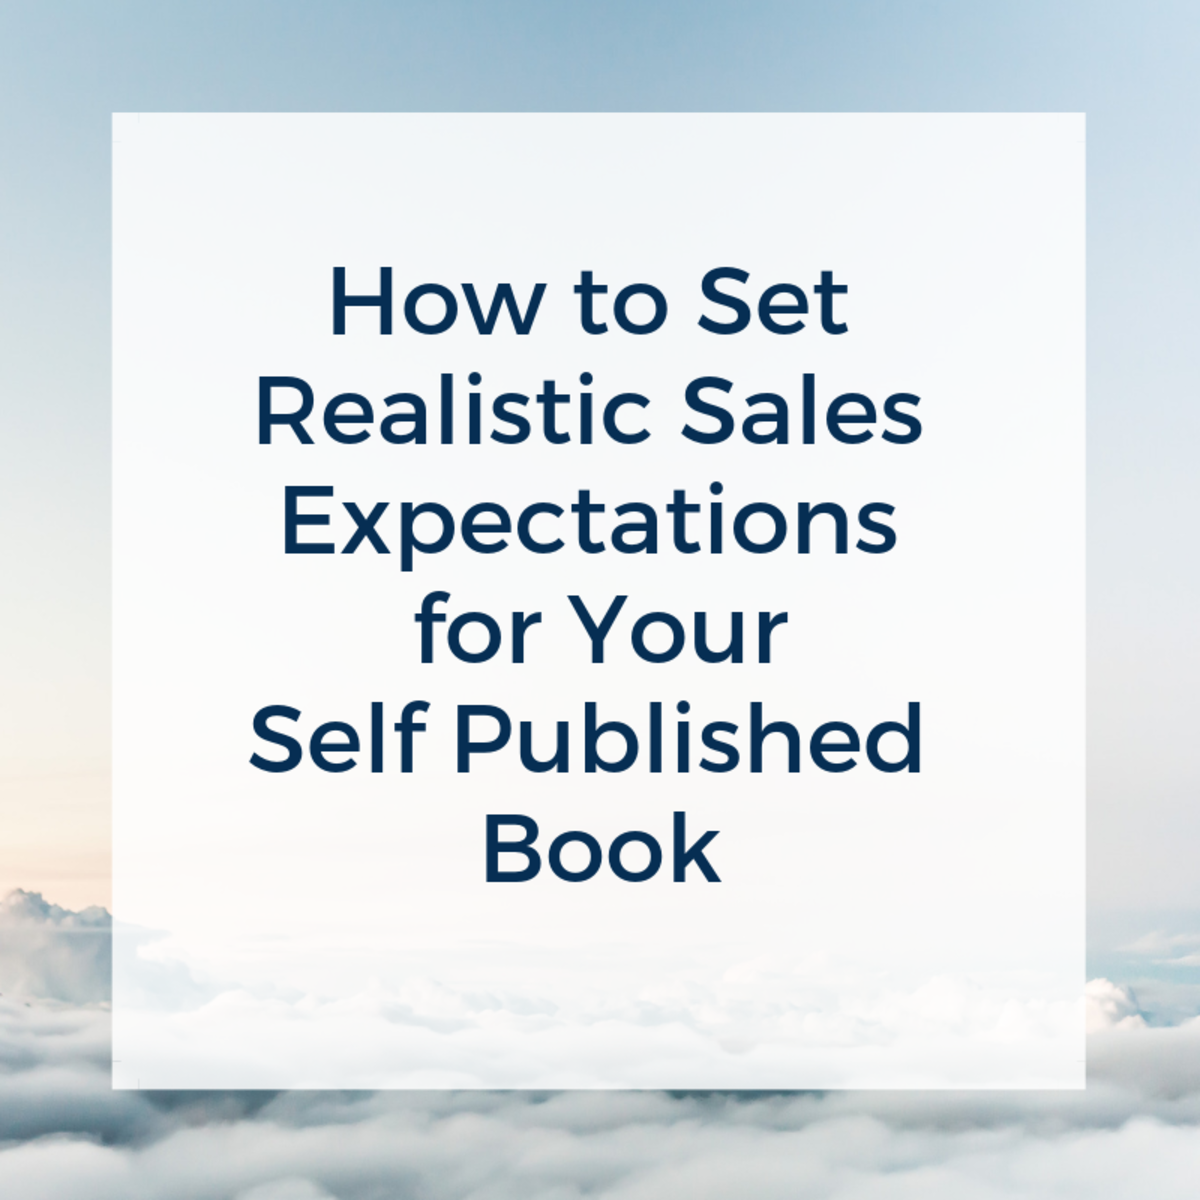 How to Set Realistic Sales Expectations for Your Self-Published Book